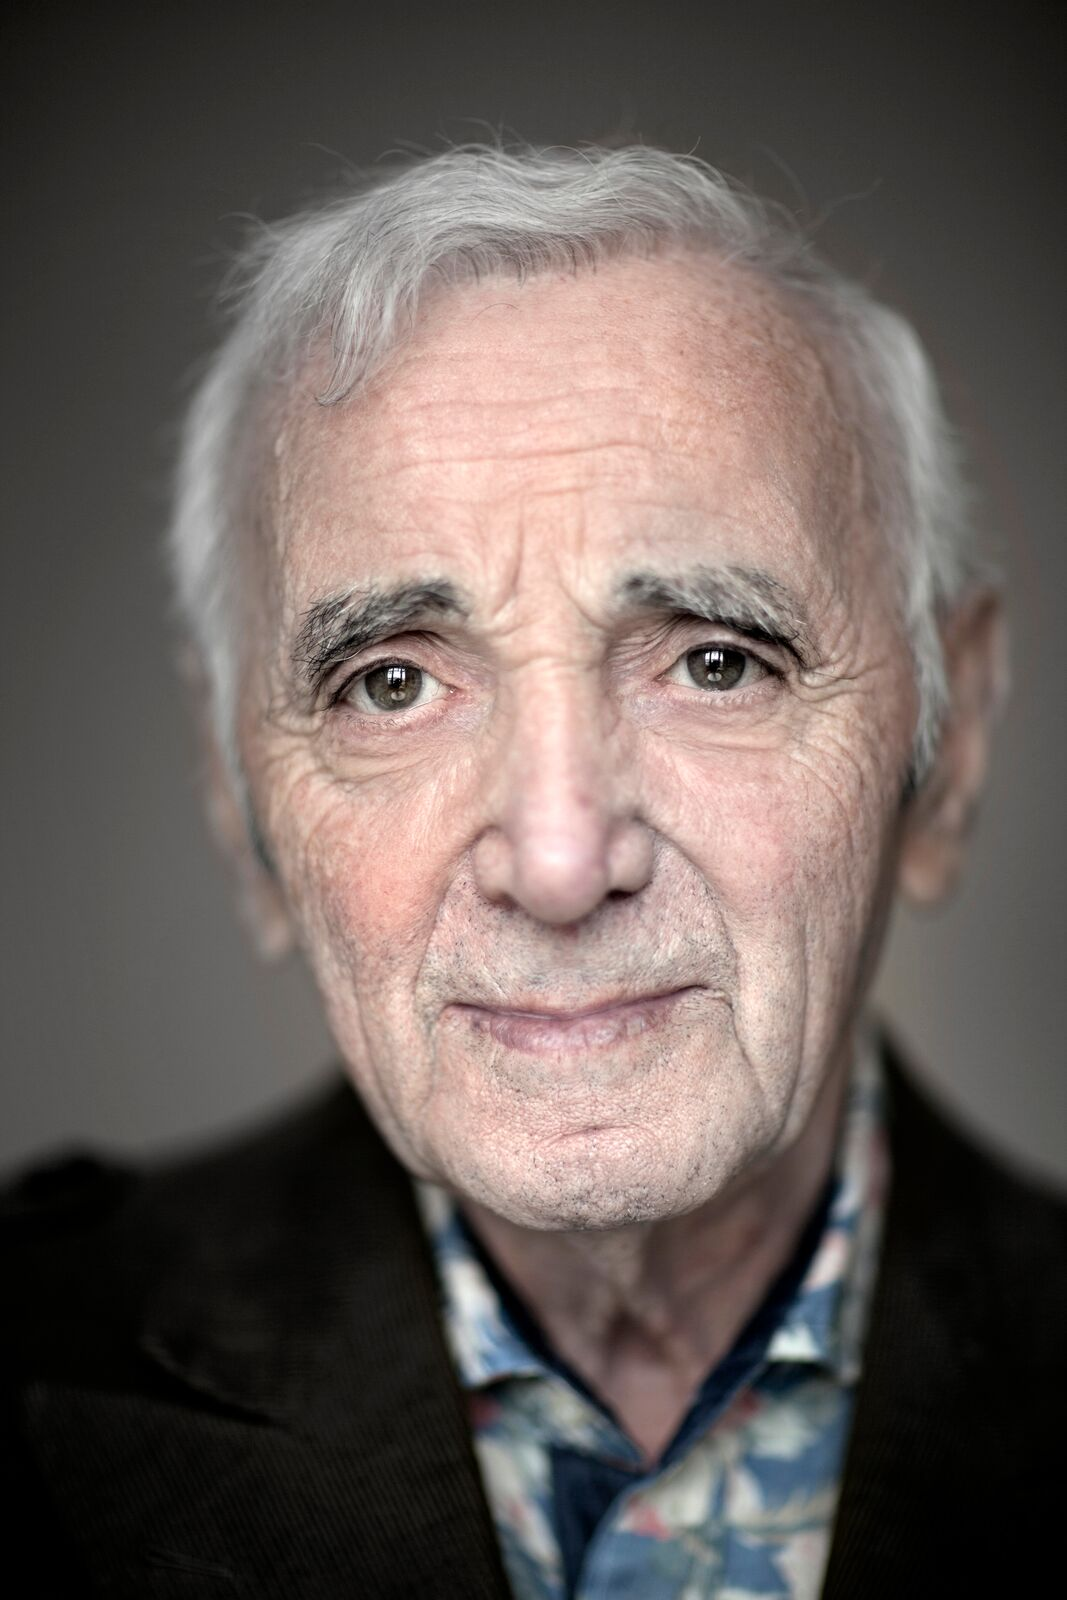 Le chanteur français Charles Aznavour photographié à Madrid, Espagne. | Photo : GettyImage